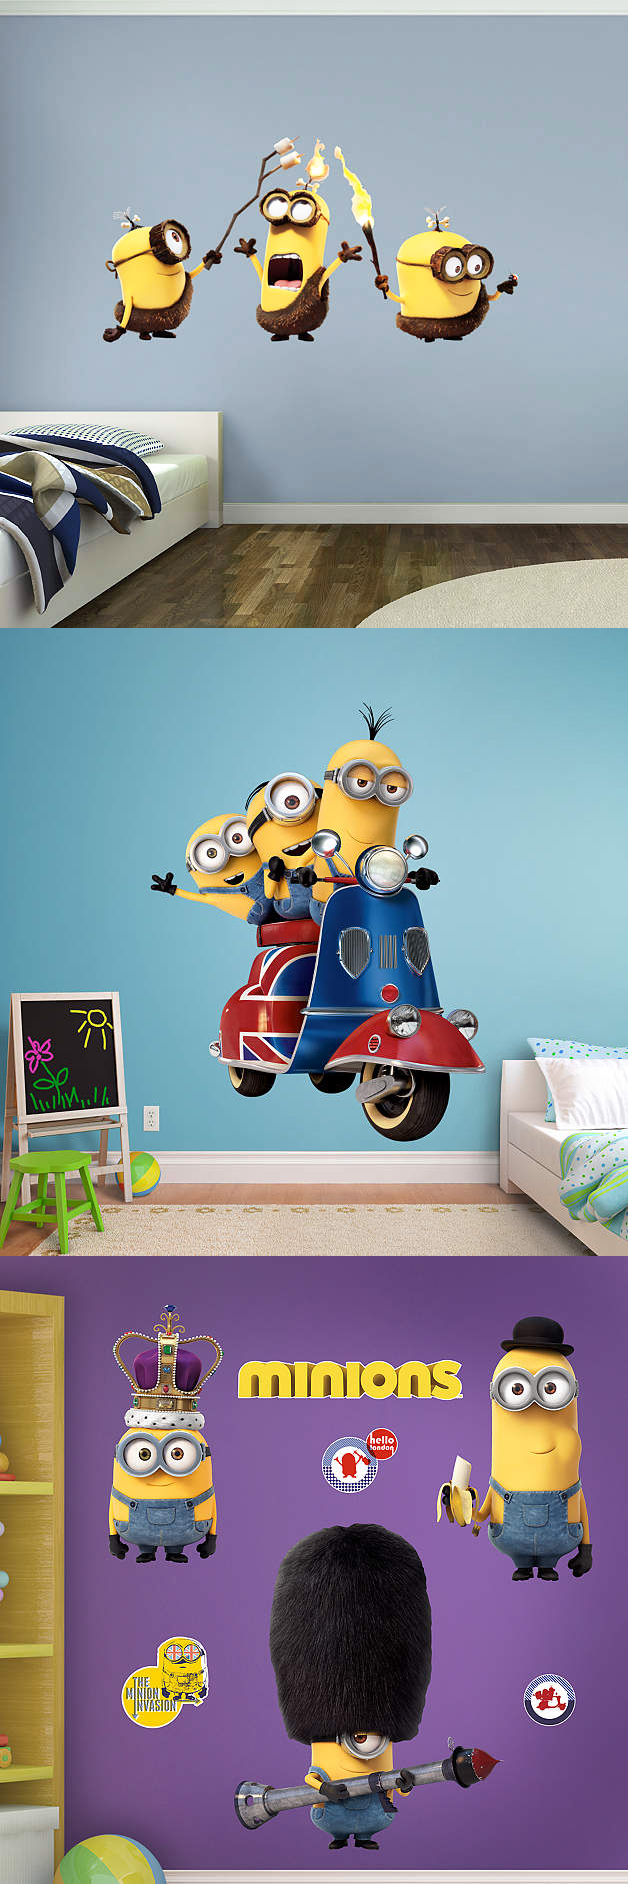 Bring Home The Cuteness With Minion Fathead Peel Stick Wall Decals With Images Minion Decorations Minions Minion Bedroom